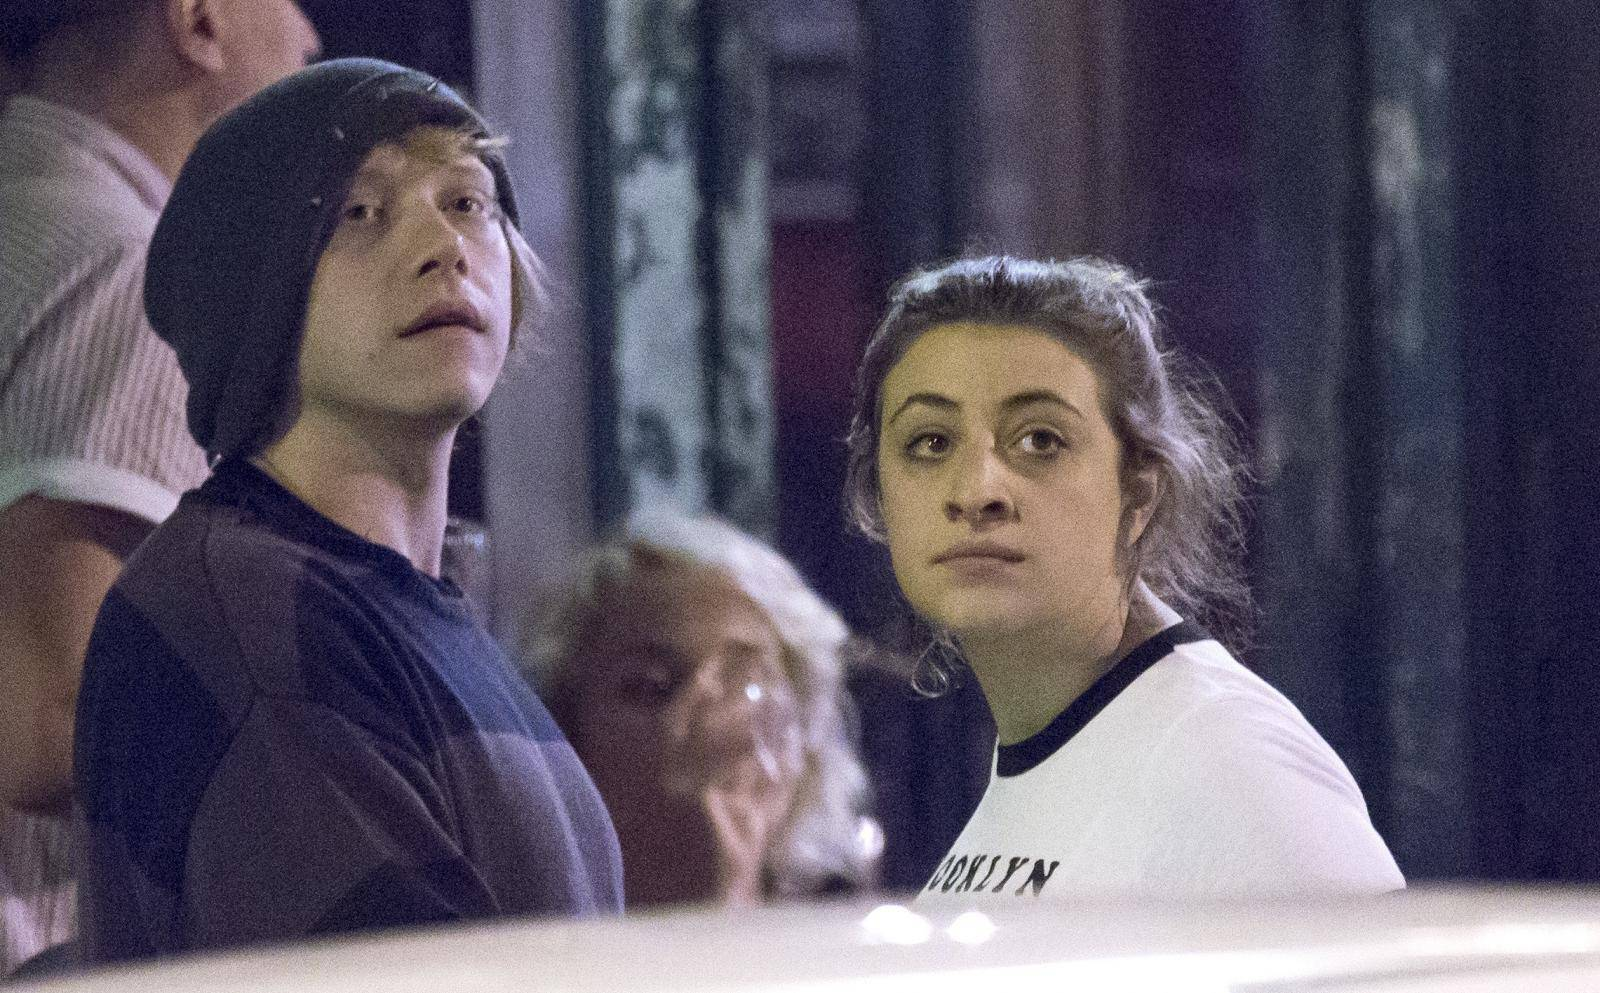 EXCLUSIVE Rupert Grint having a drink with Iwan Rheon, Rheon's girlfriend Zoe Grisedale and friends at a bar in Kraków